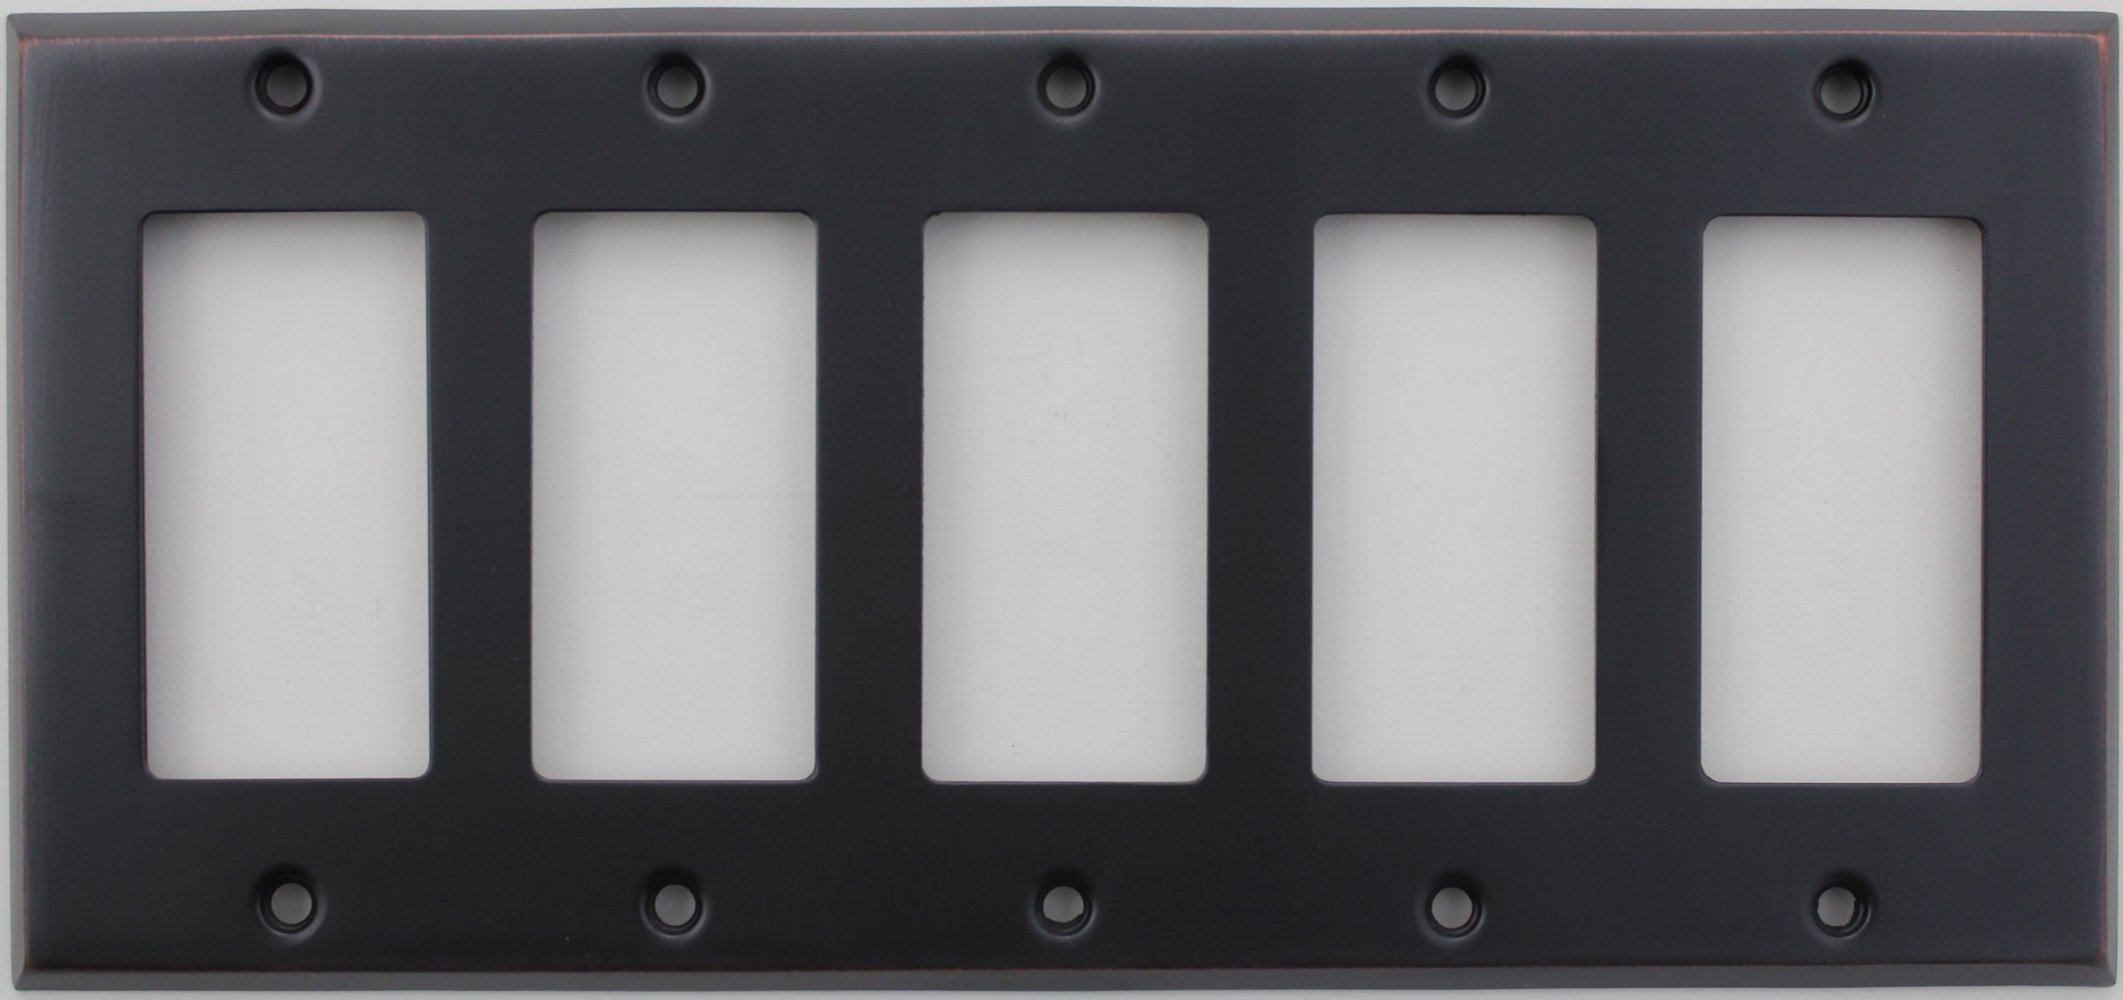 Classic Accents Stamped Steel Oil Rubbed Bronze Five Gang GFI/Rocker Opening Wall Plate